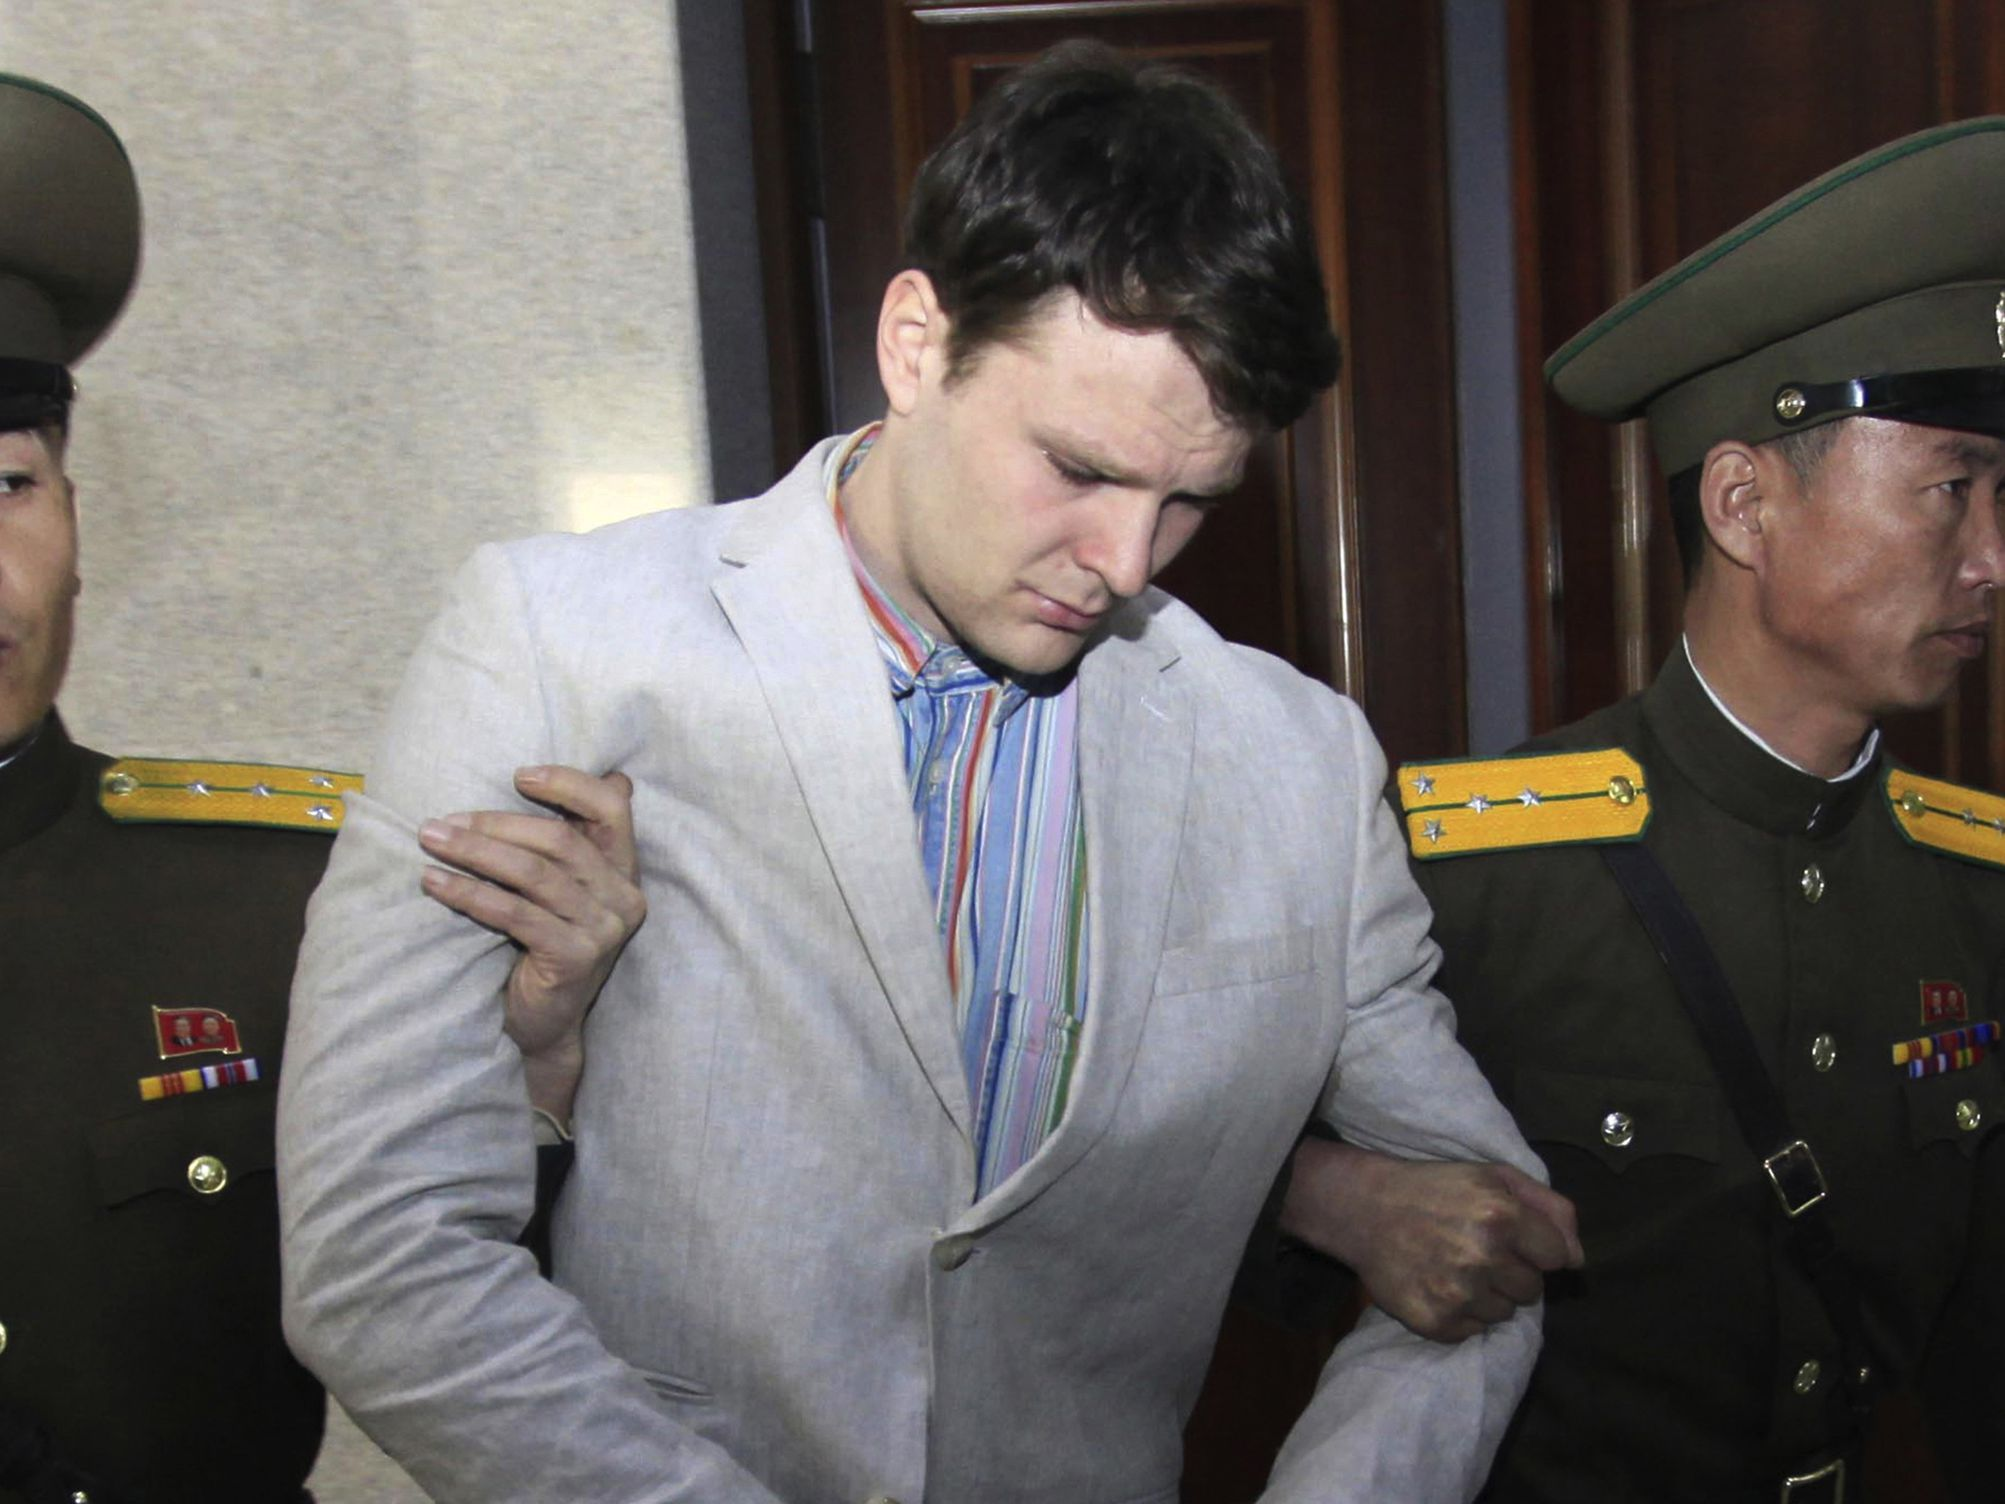 North Korea billed the U.S. $2 million for Otto Warmbier's care, according to reports